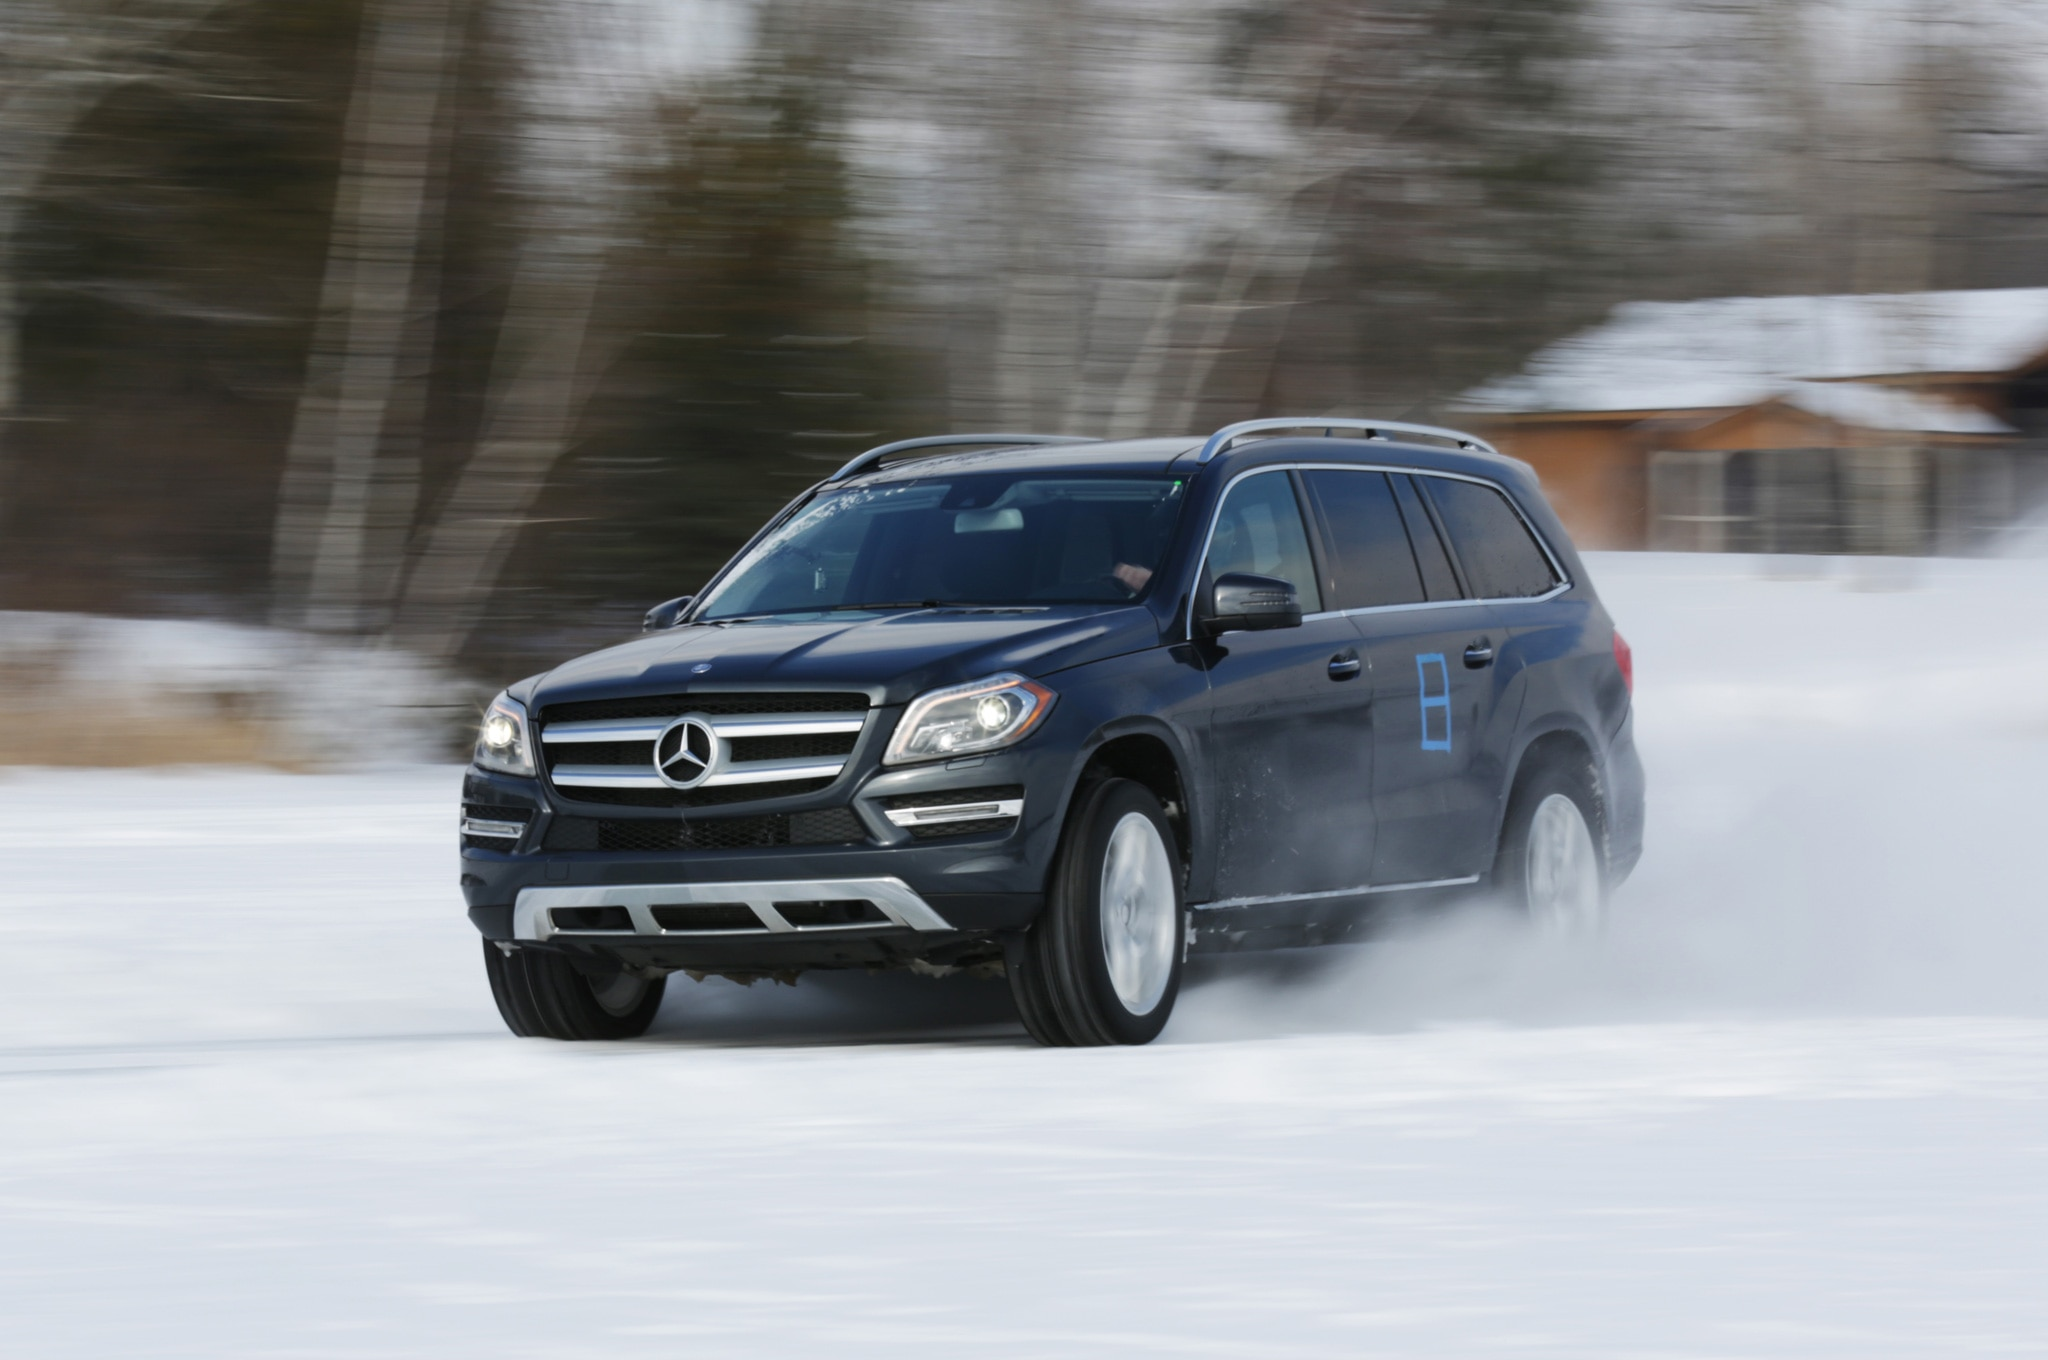 2013 Mercedes-Benz GL450 Goes Ice Racing - Four Seasons